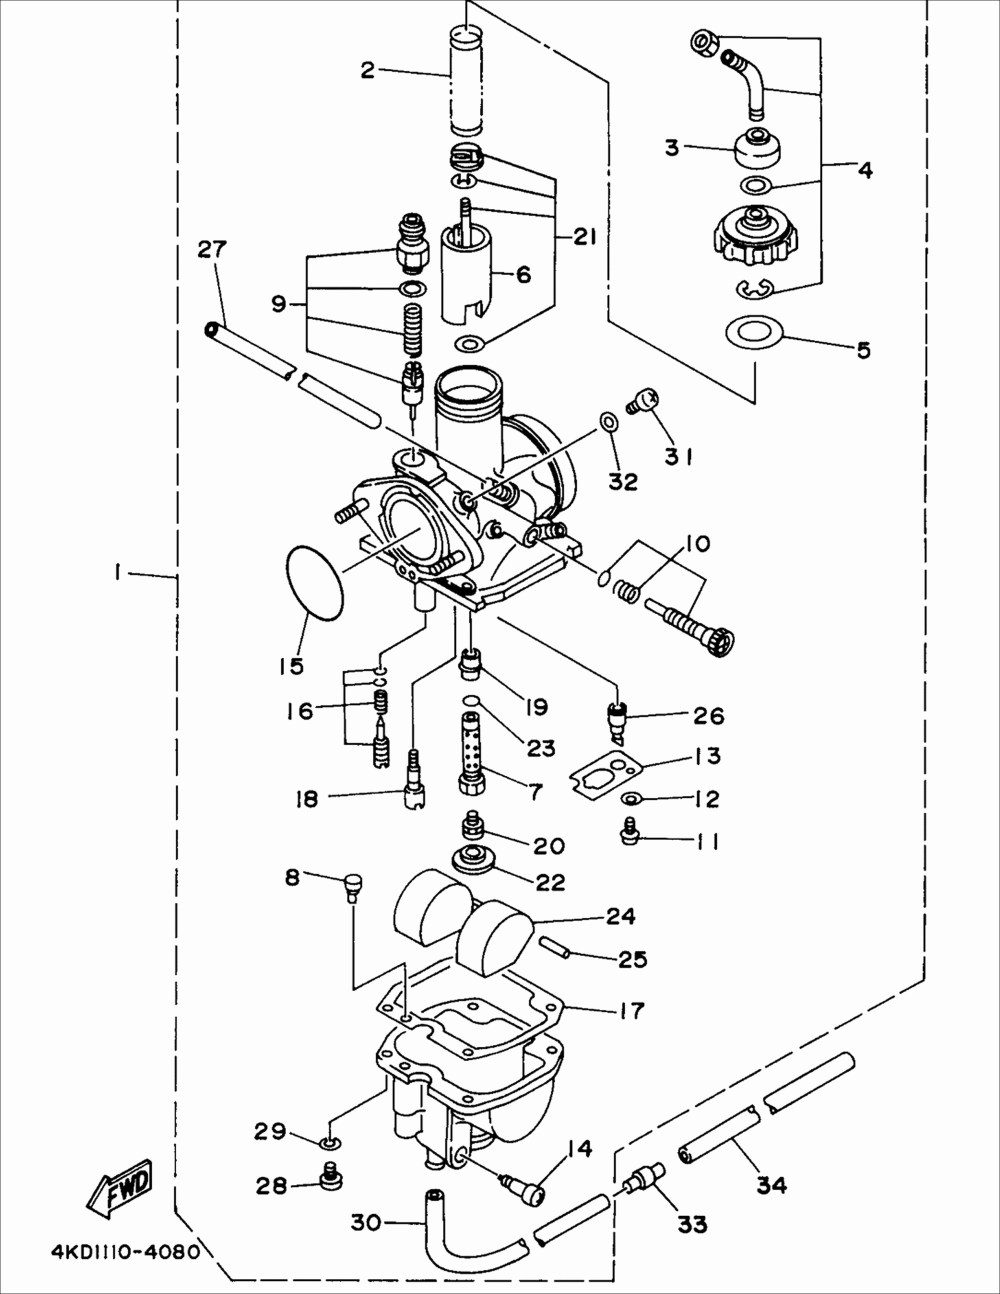 medium resolution of 1995 pontiac bonneville fuse panel diagram worksheet and wiring rh bookinc co 2001 pontiac bonneville specs